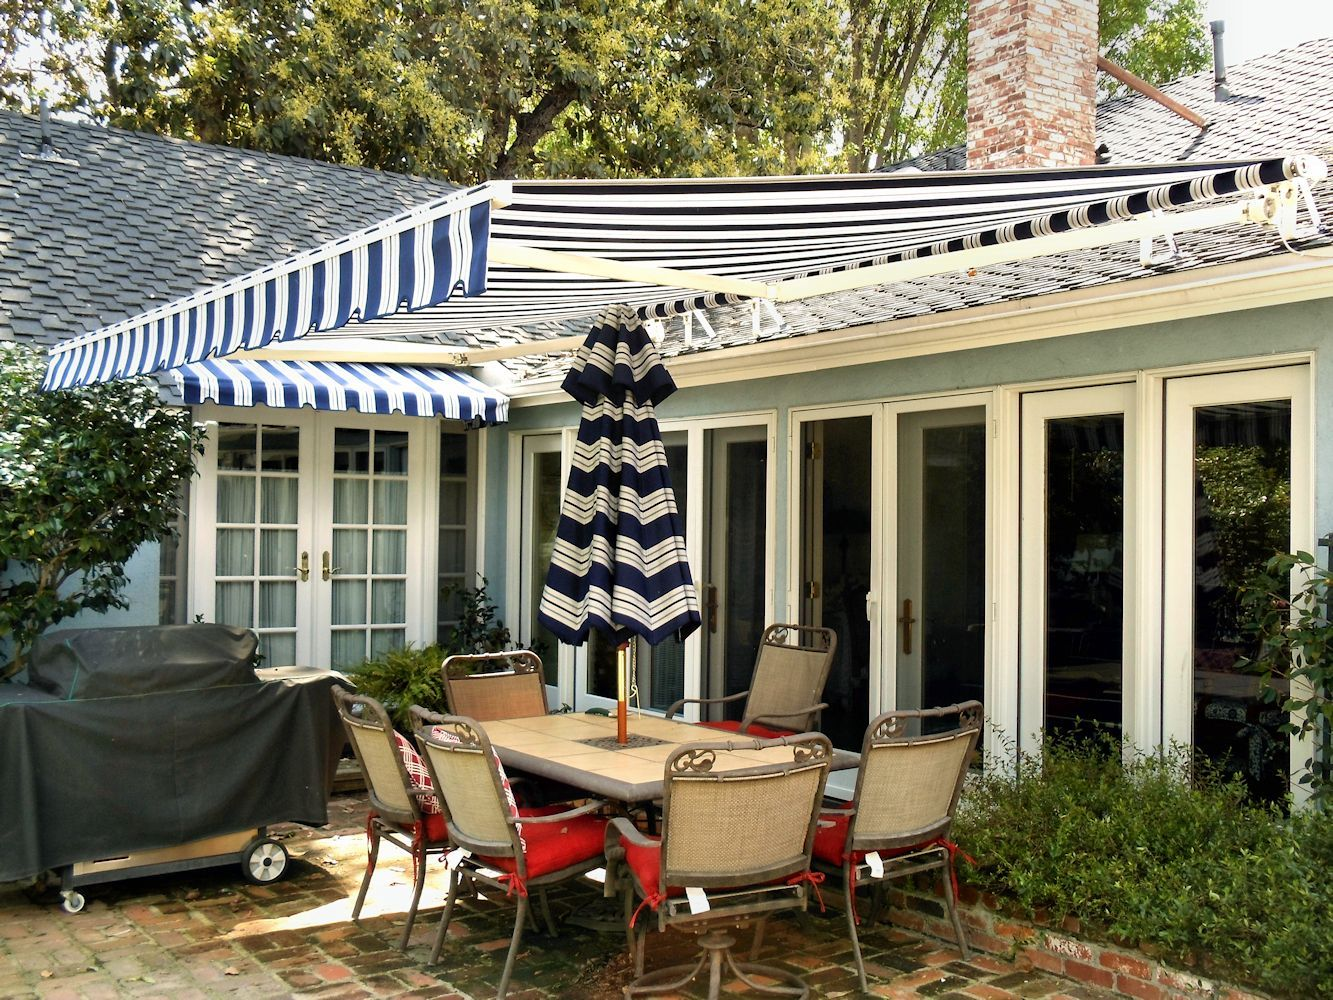 Residential Awnings Patio Covers Shades By Superior Awning Outdoor Rooms Aluminum Patio Covers Outdoor Patio Space